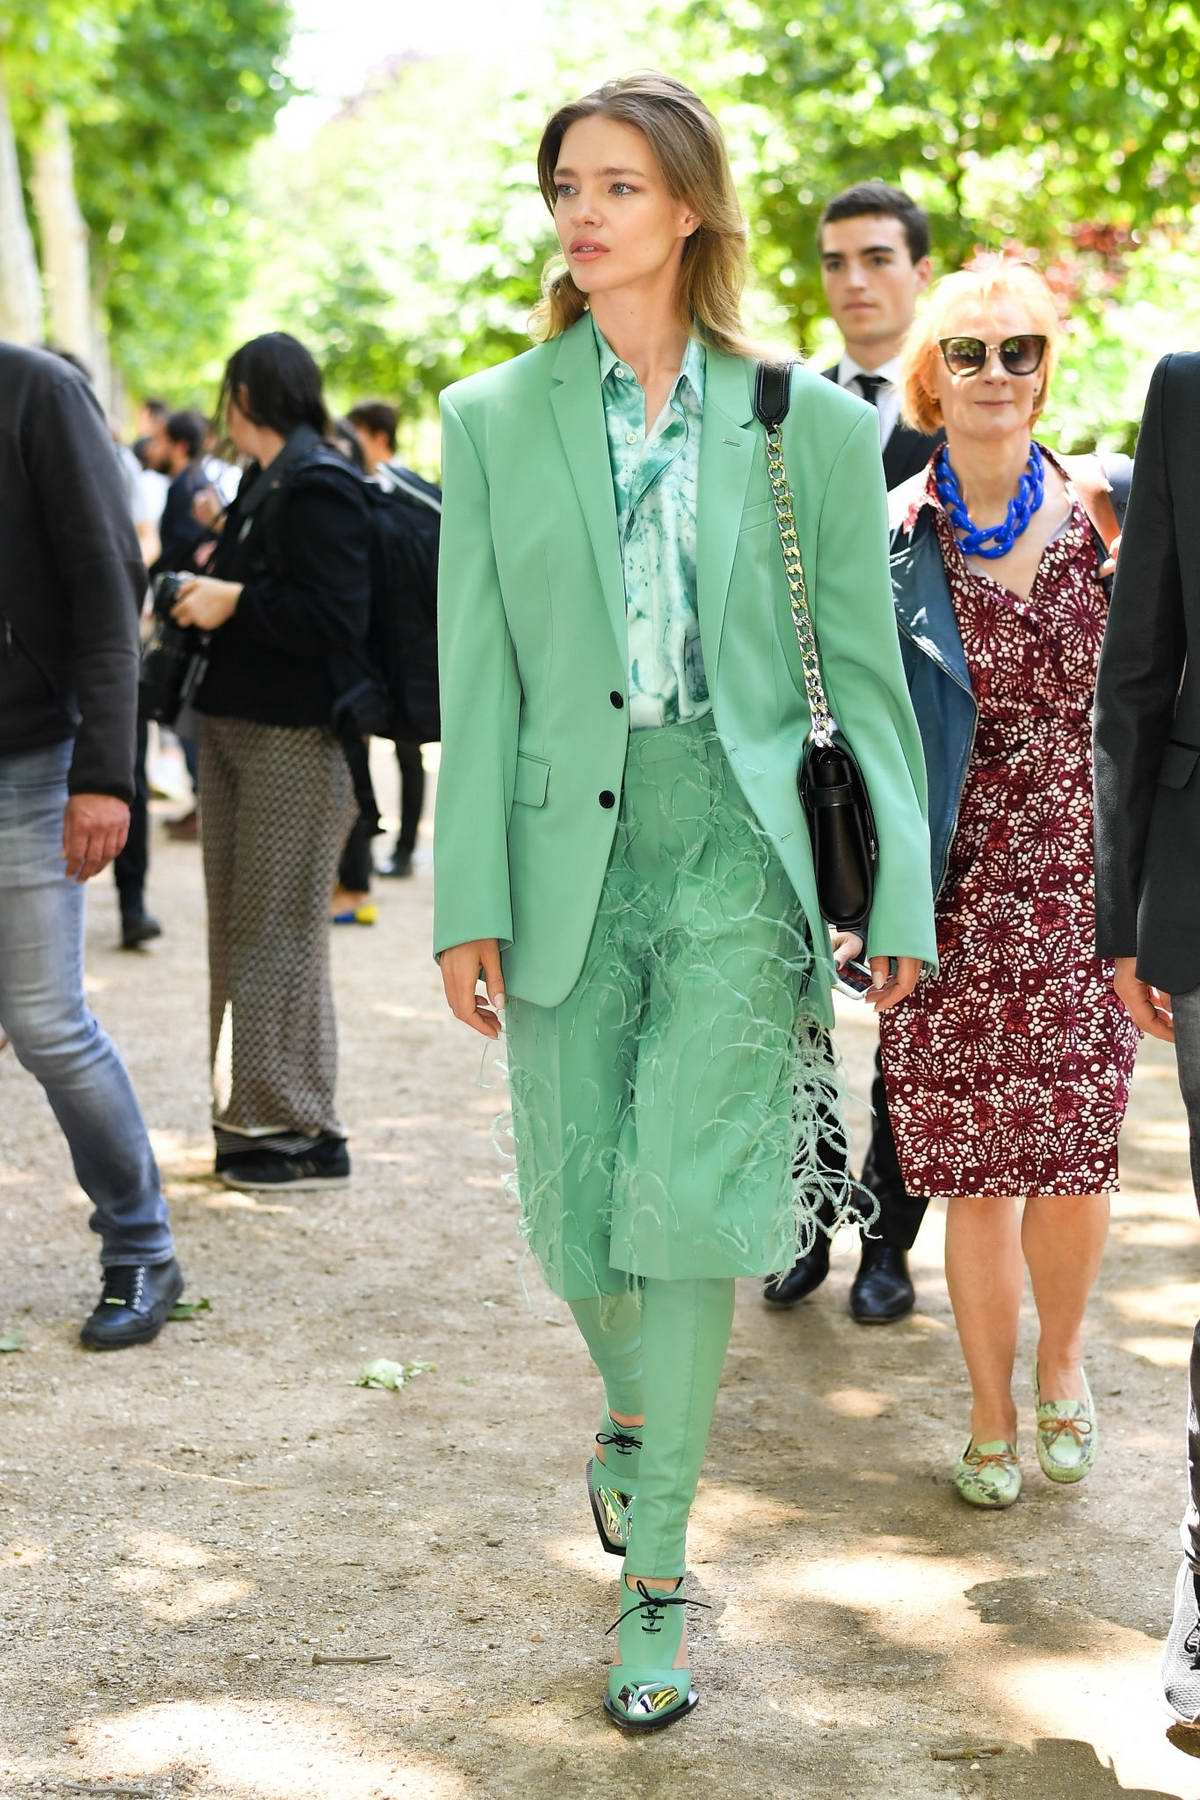 Natalia Vodianova attends the Berluti Menswear Spring/Summer 2020 show during Paris Fashion Week in Paris, France